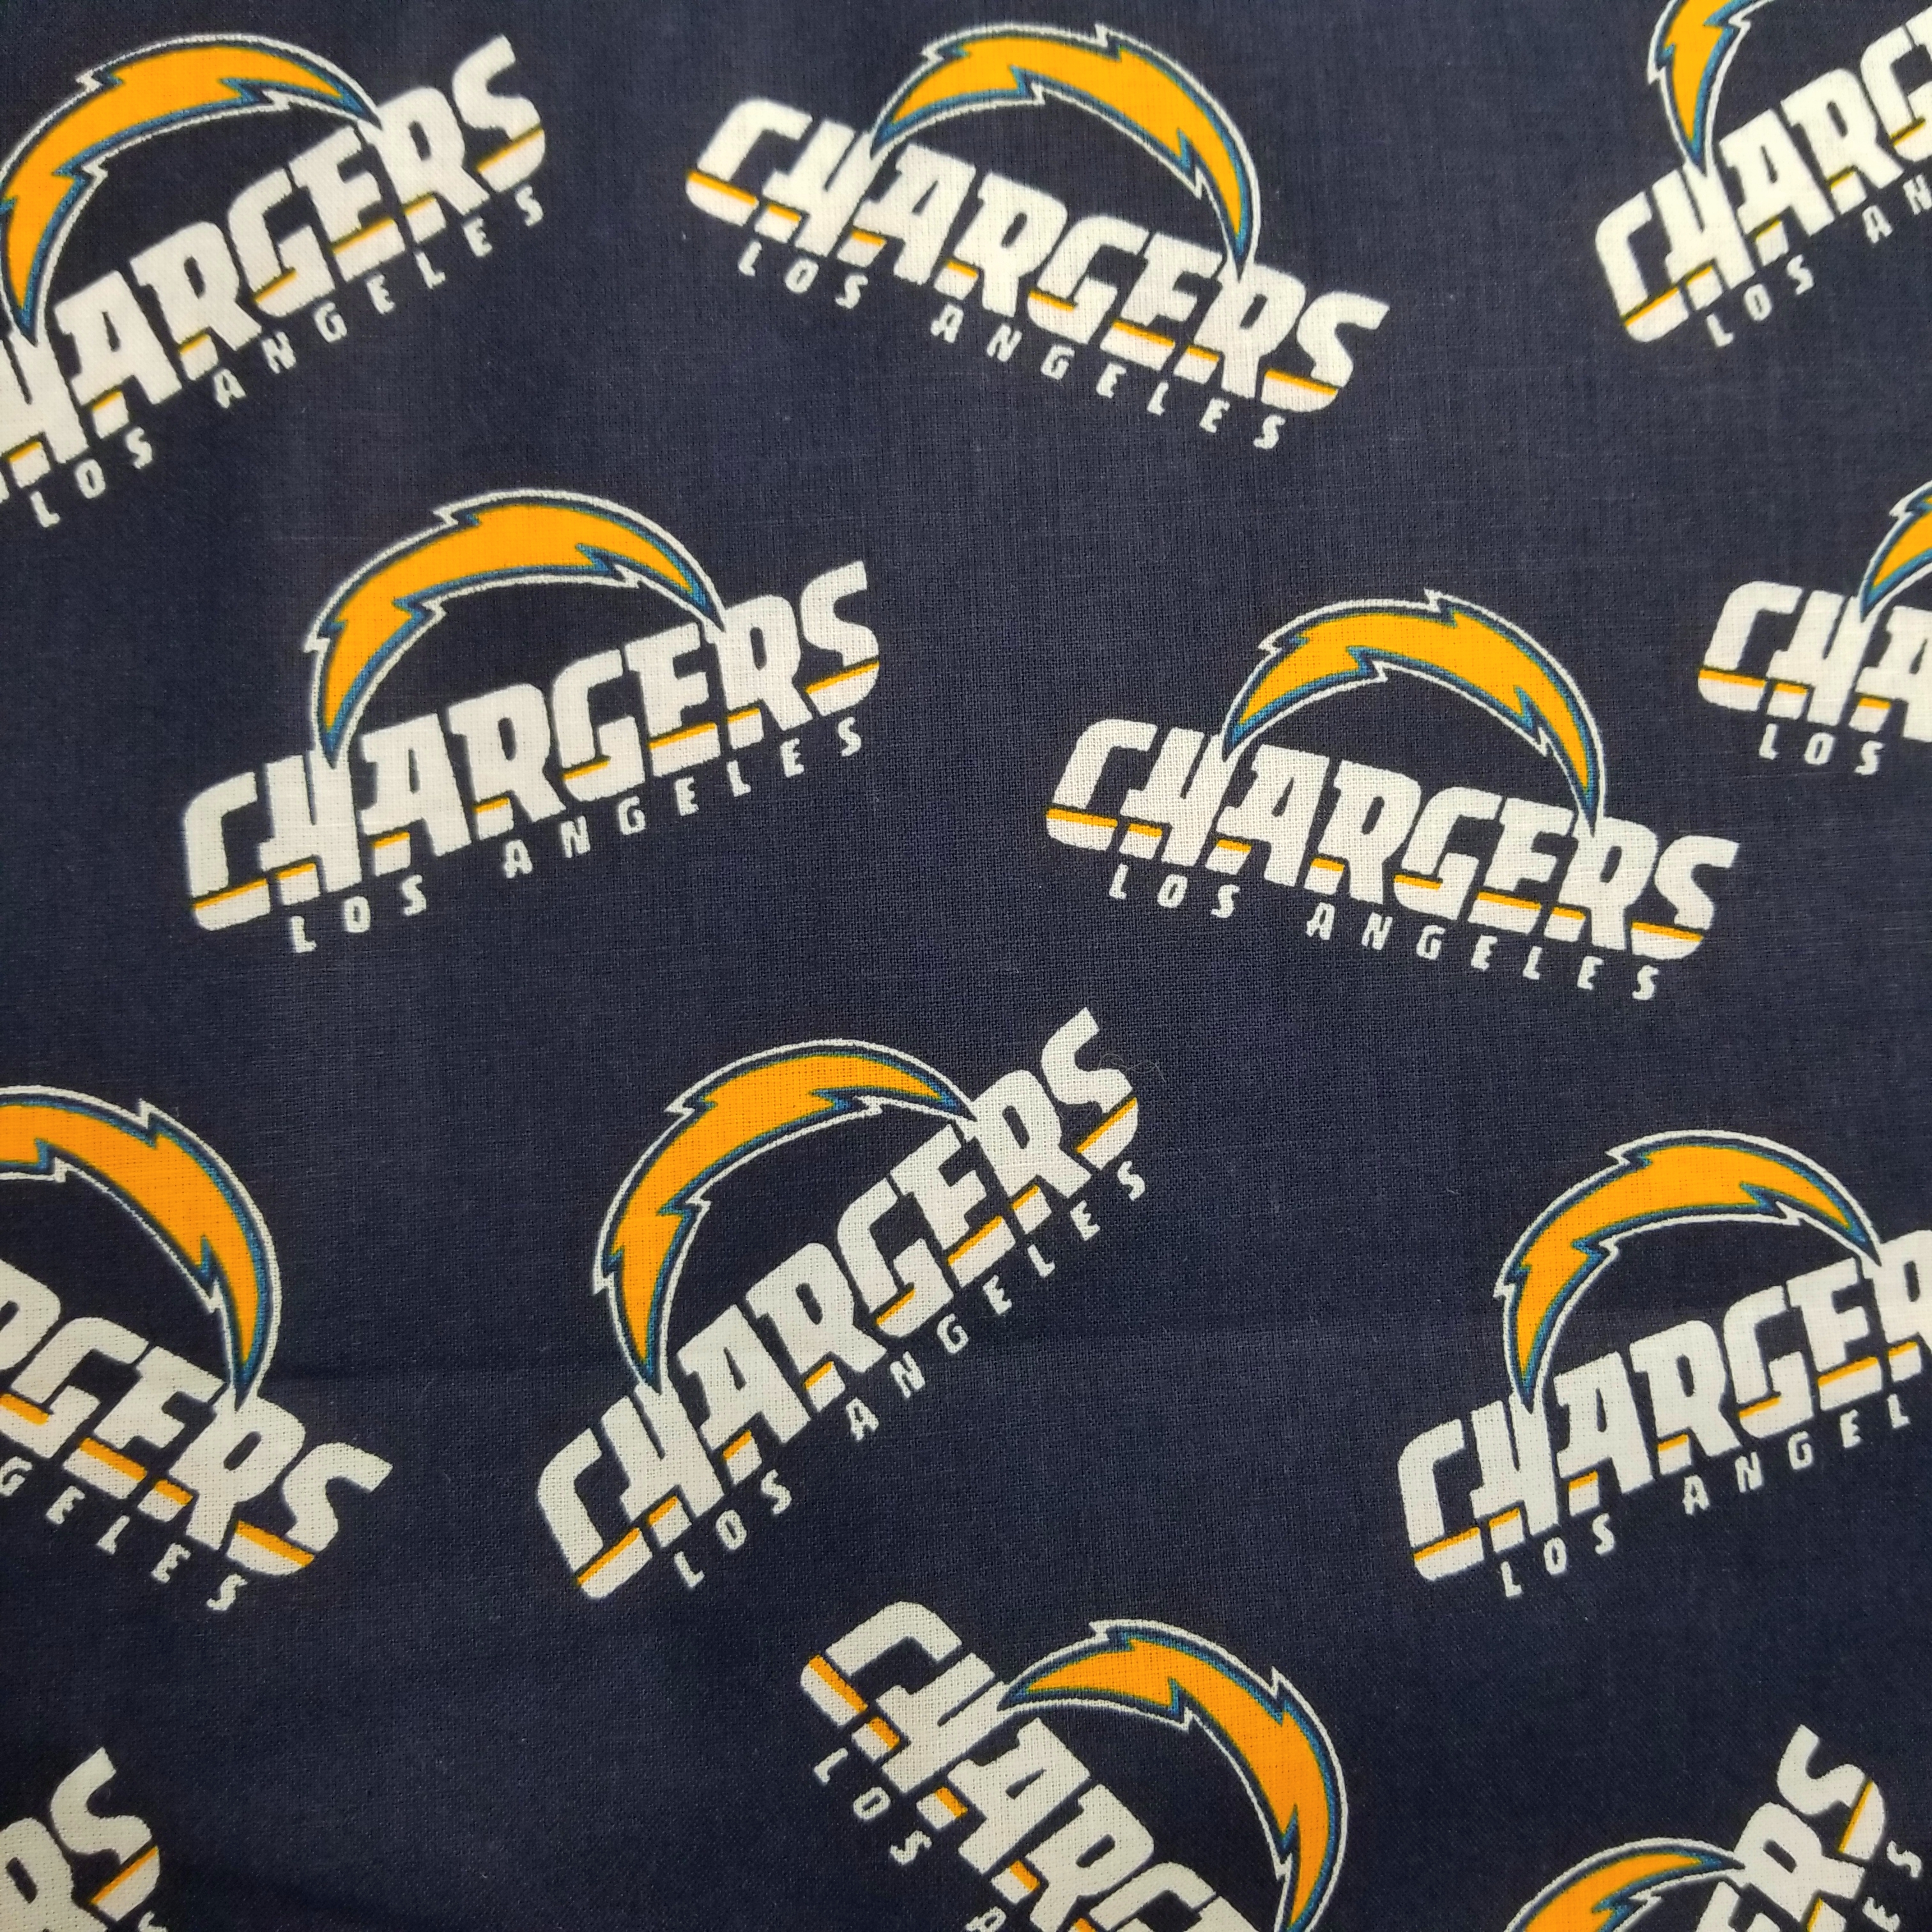 Team Los Angeles Chargers